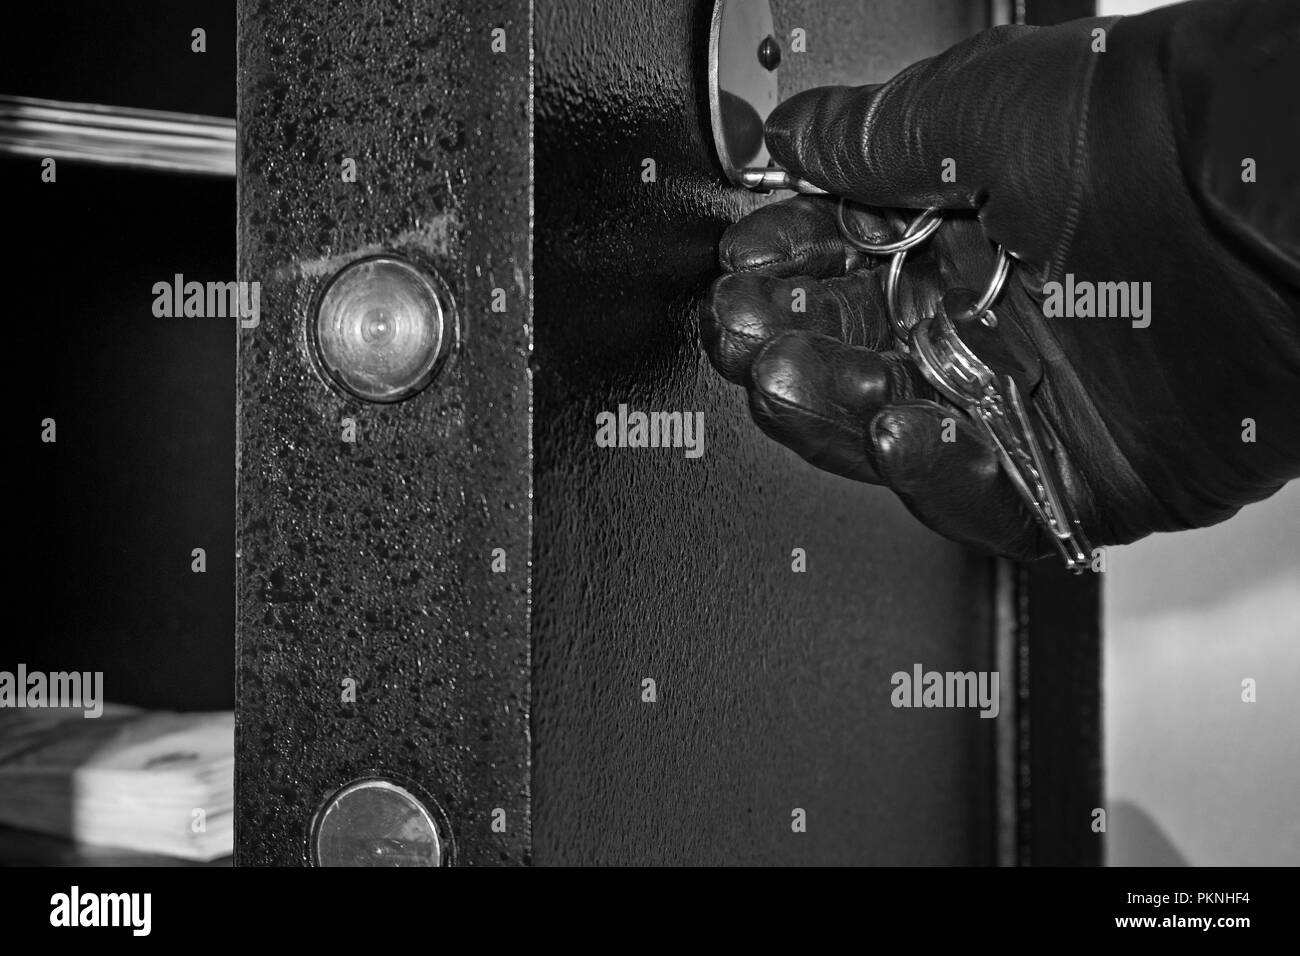 Detail of Open Safe with Hand of Thief - Stock Image